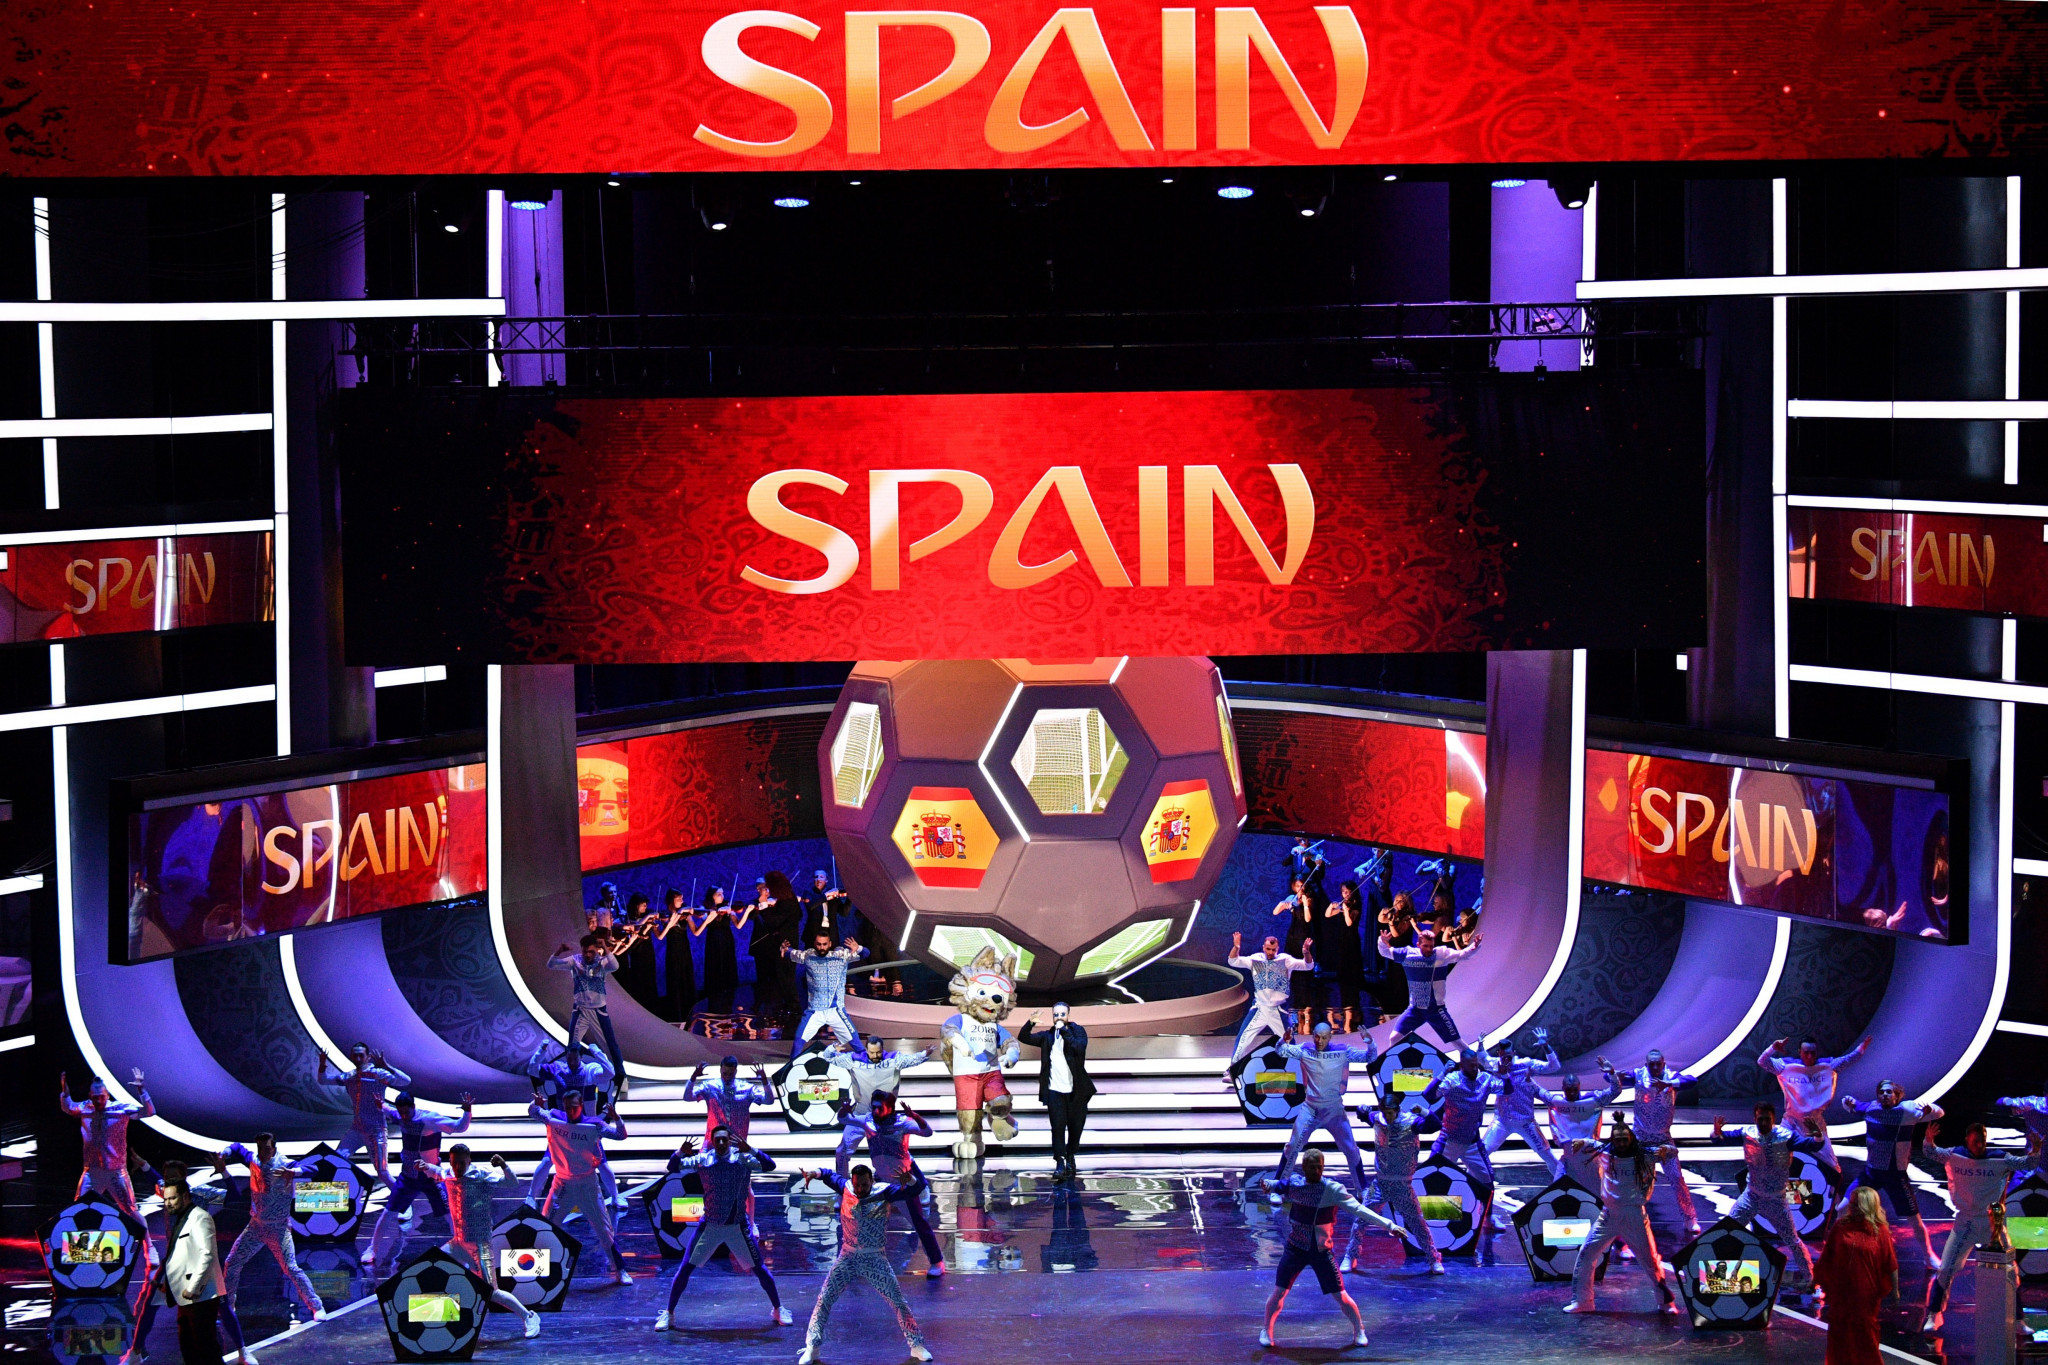 Spain are set to compete against Iran, Portugal and Morocco in the group stage in Russia ©Getty Images